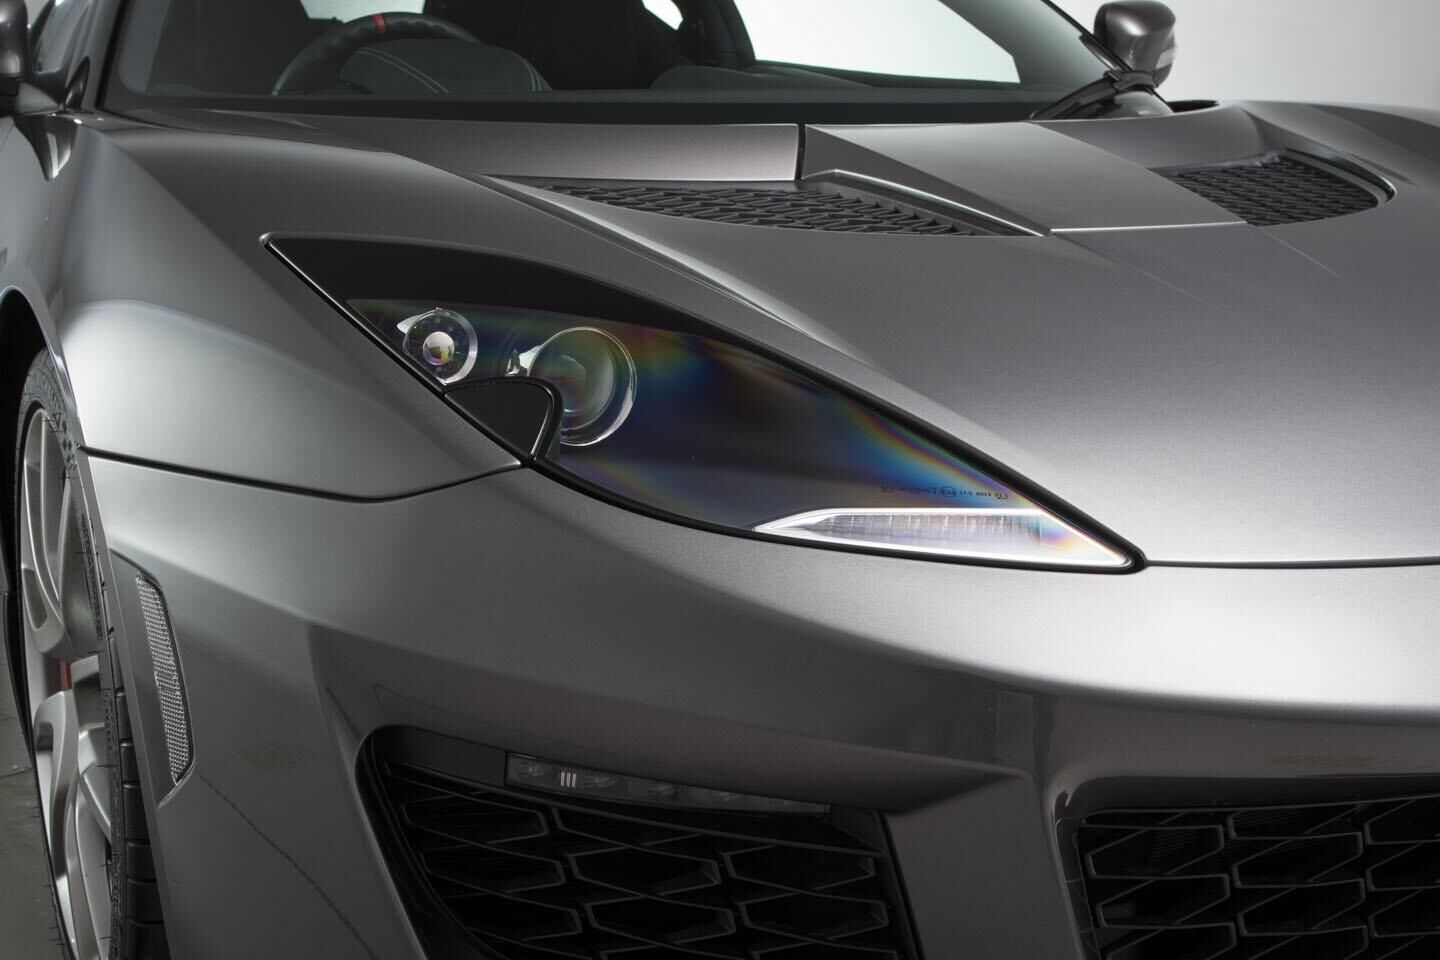 Lotus Evora featuring headlights and rear lights designed and manufactured by Lite-wire